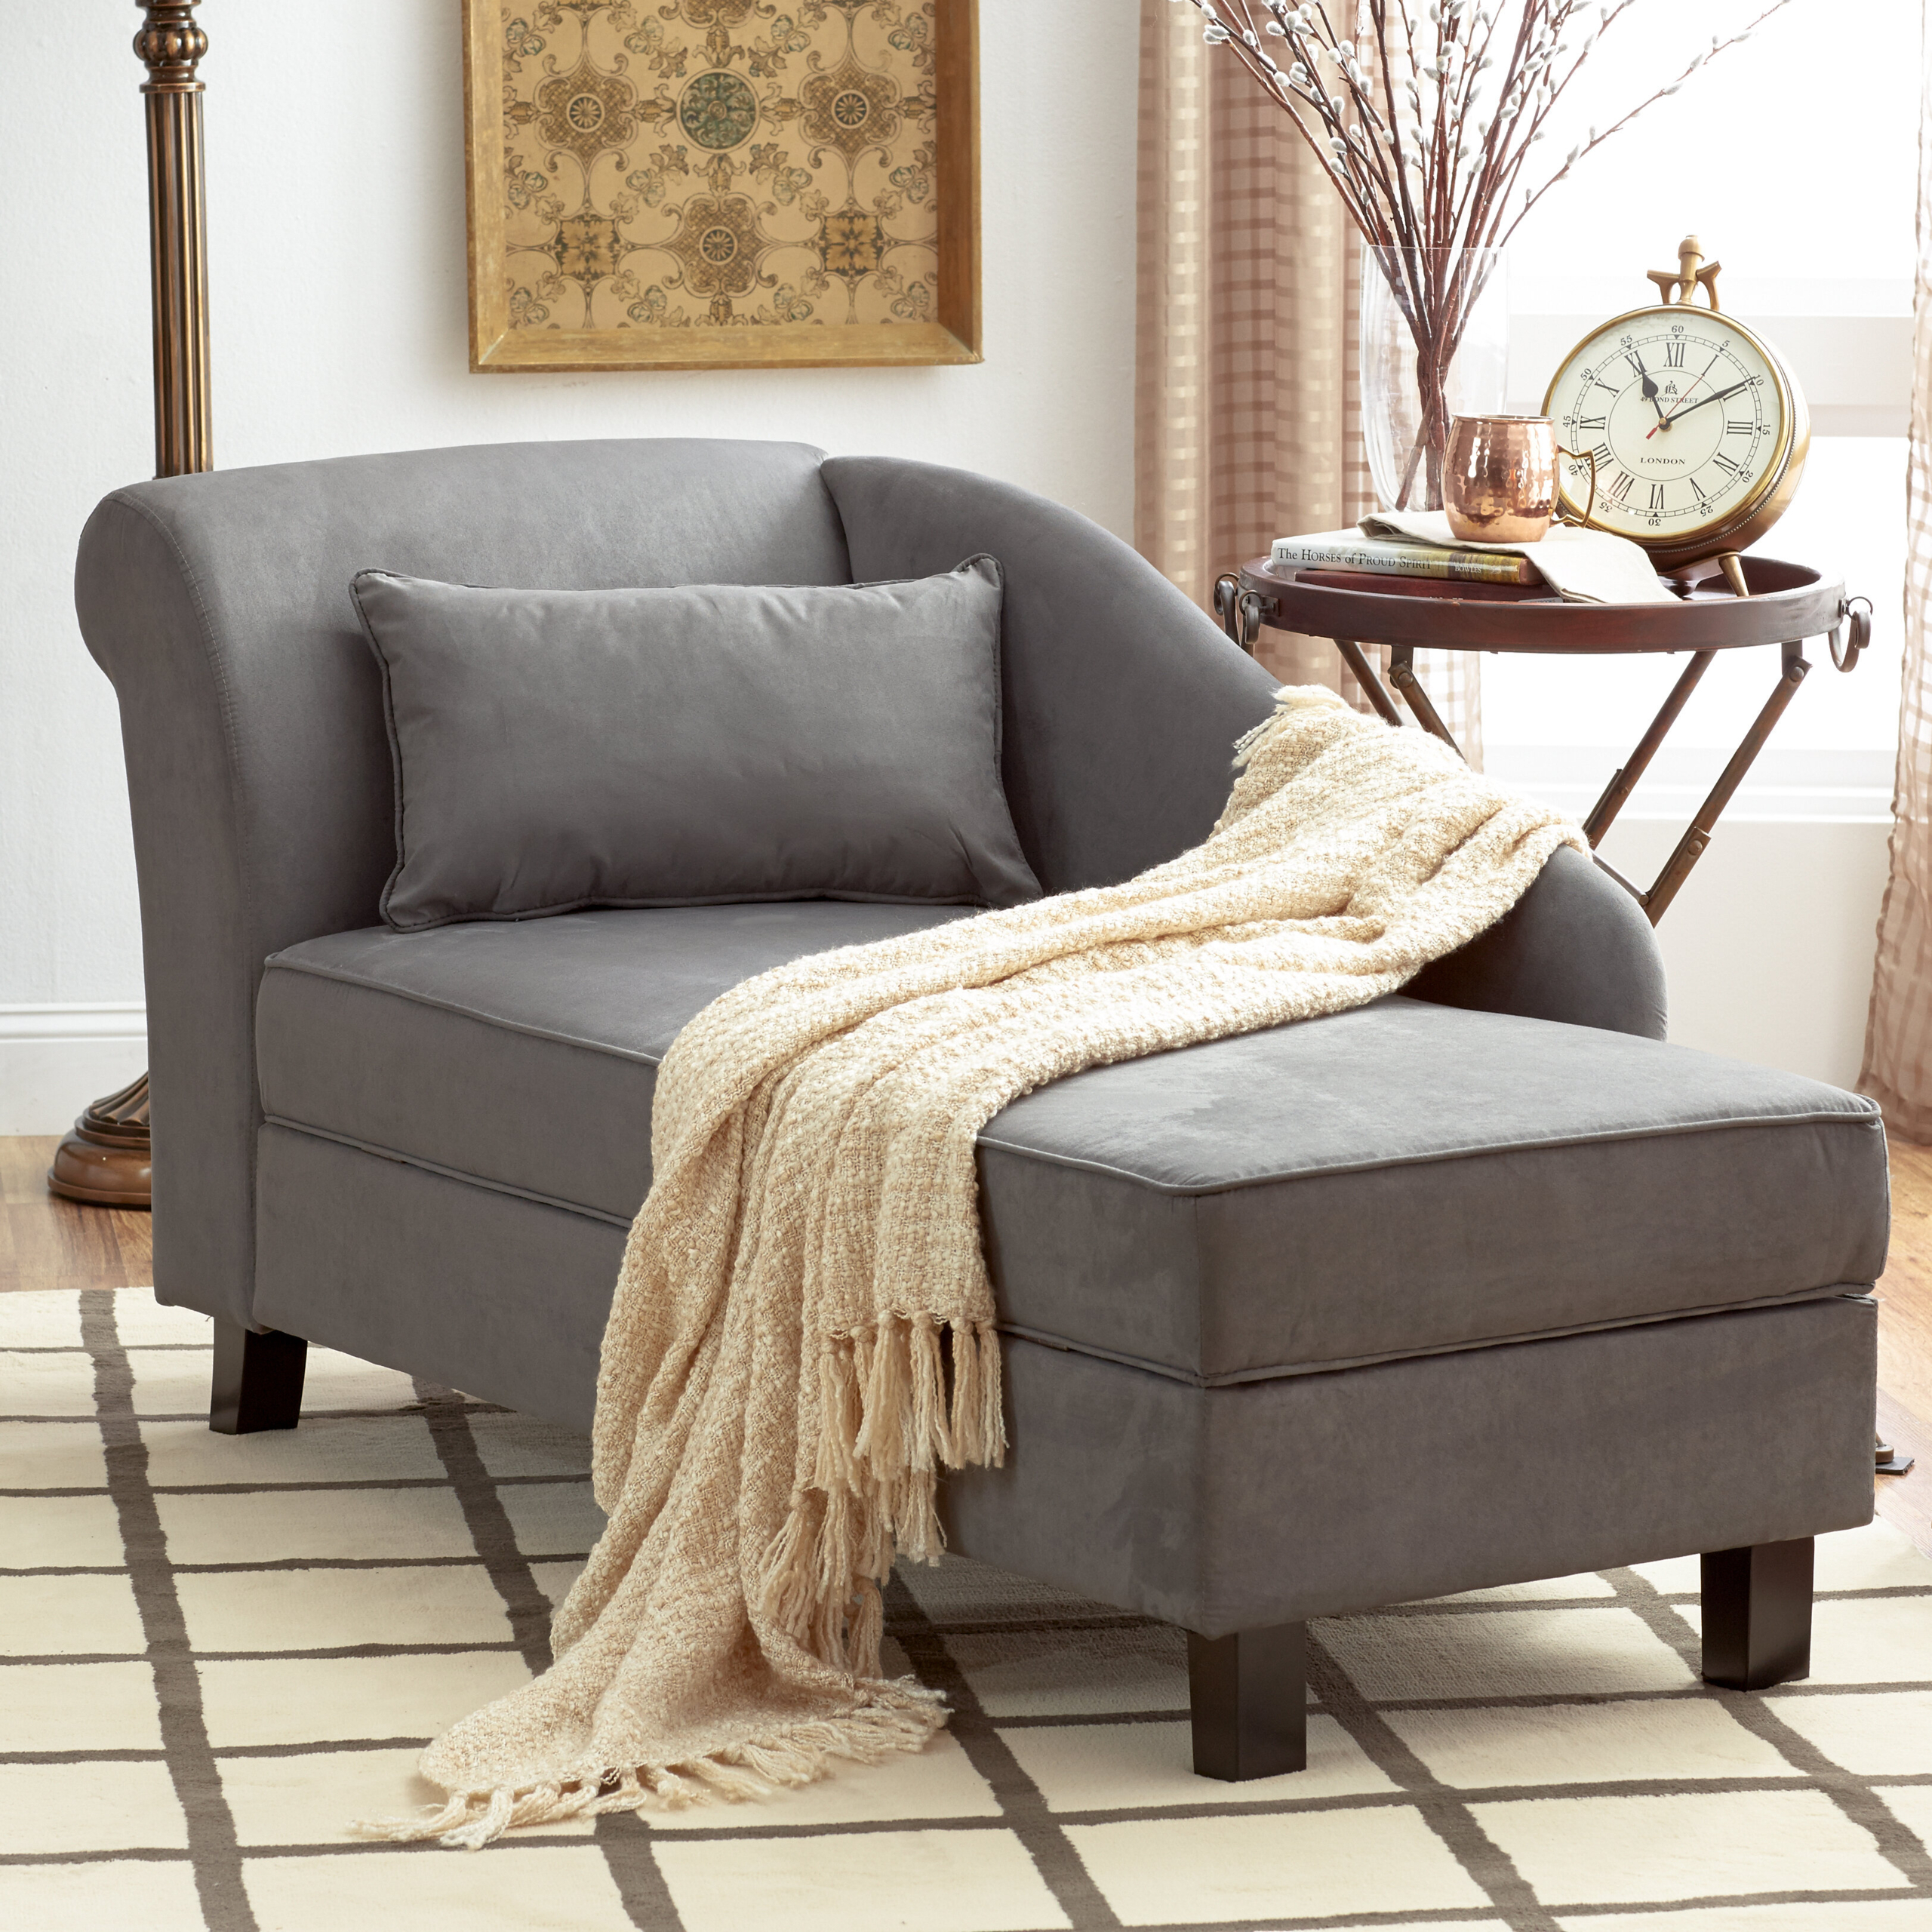 chaise chair for bedroom wheelchair karma lounge chairs visual hunt home design ideas